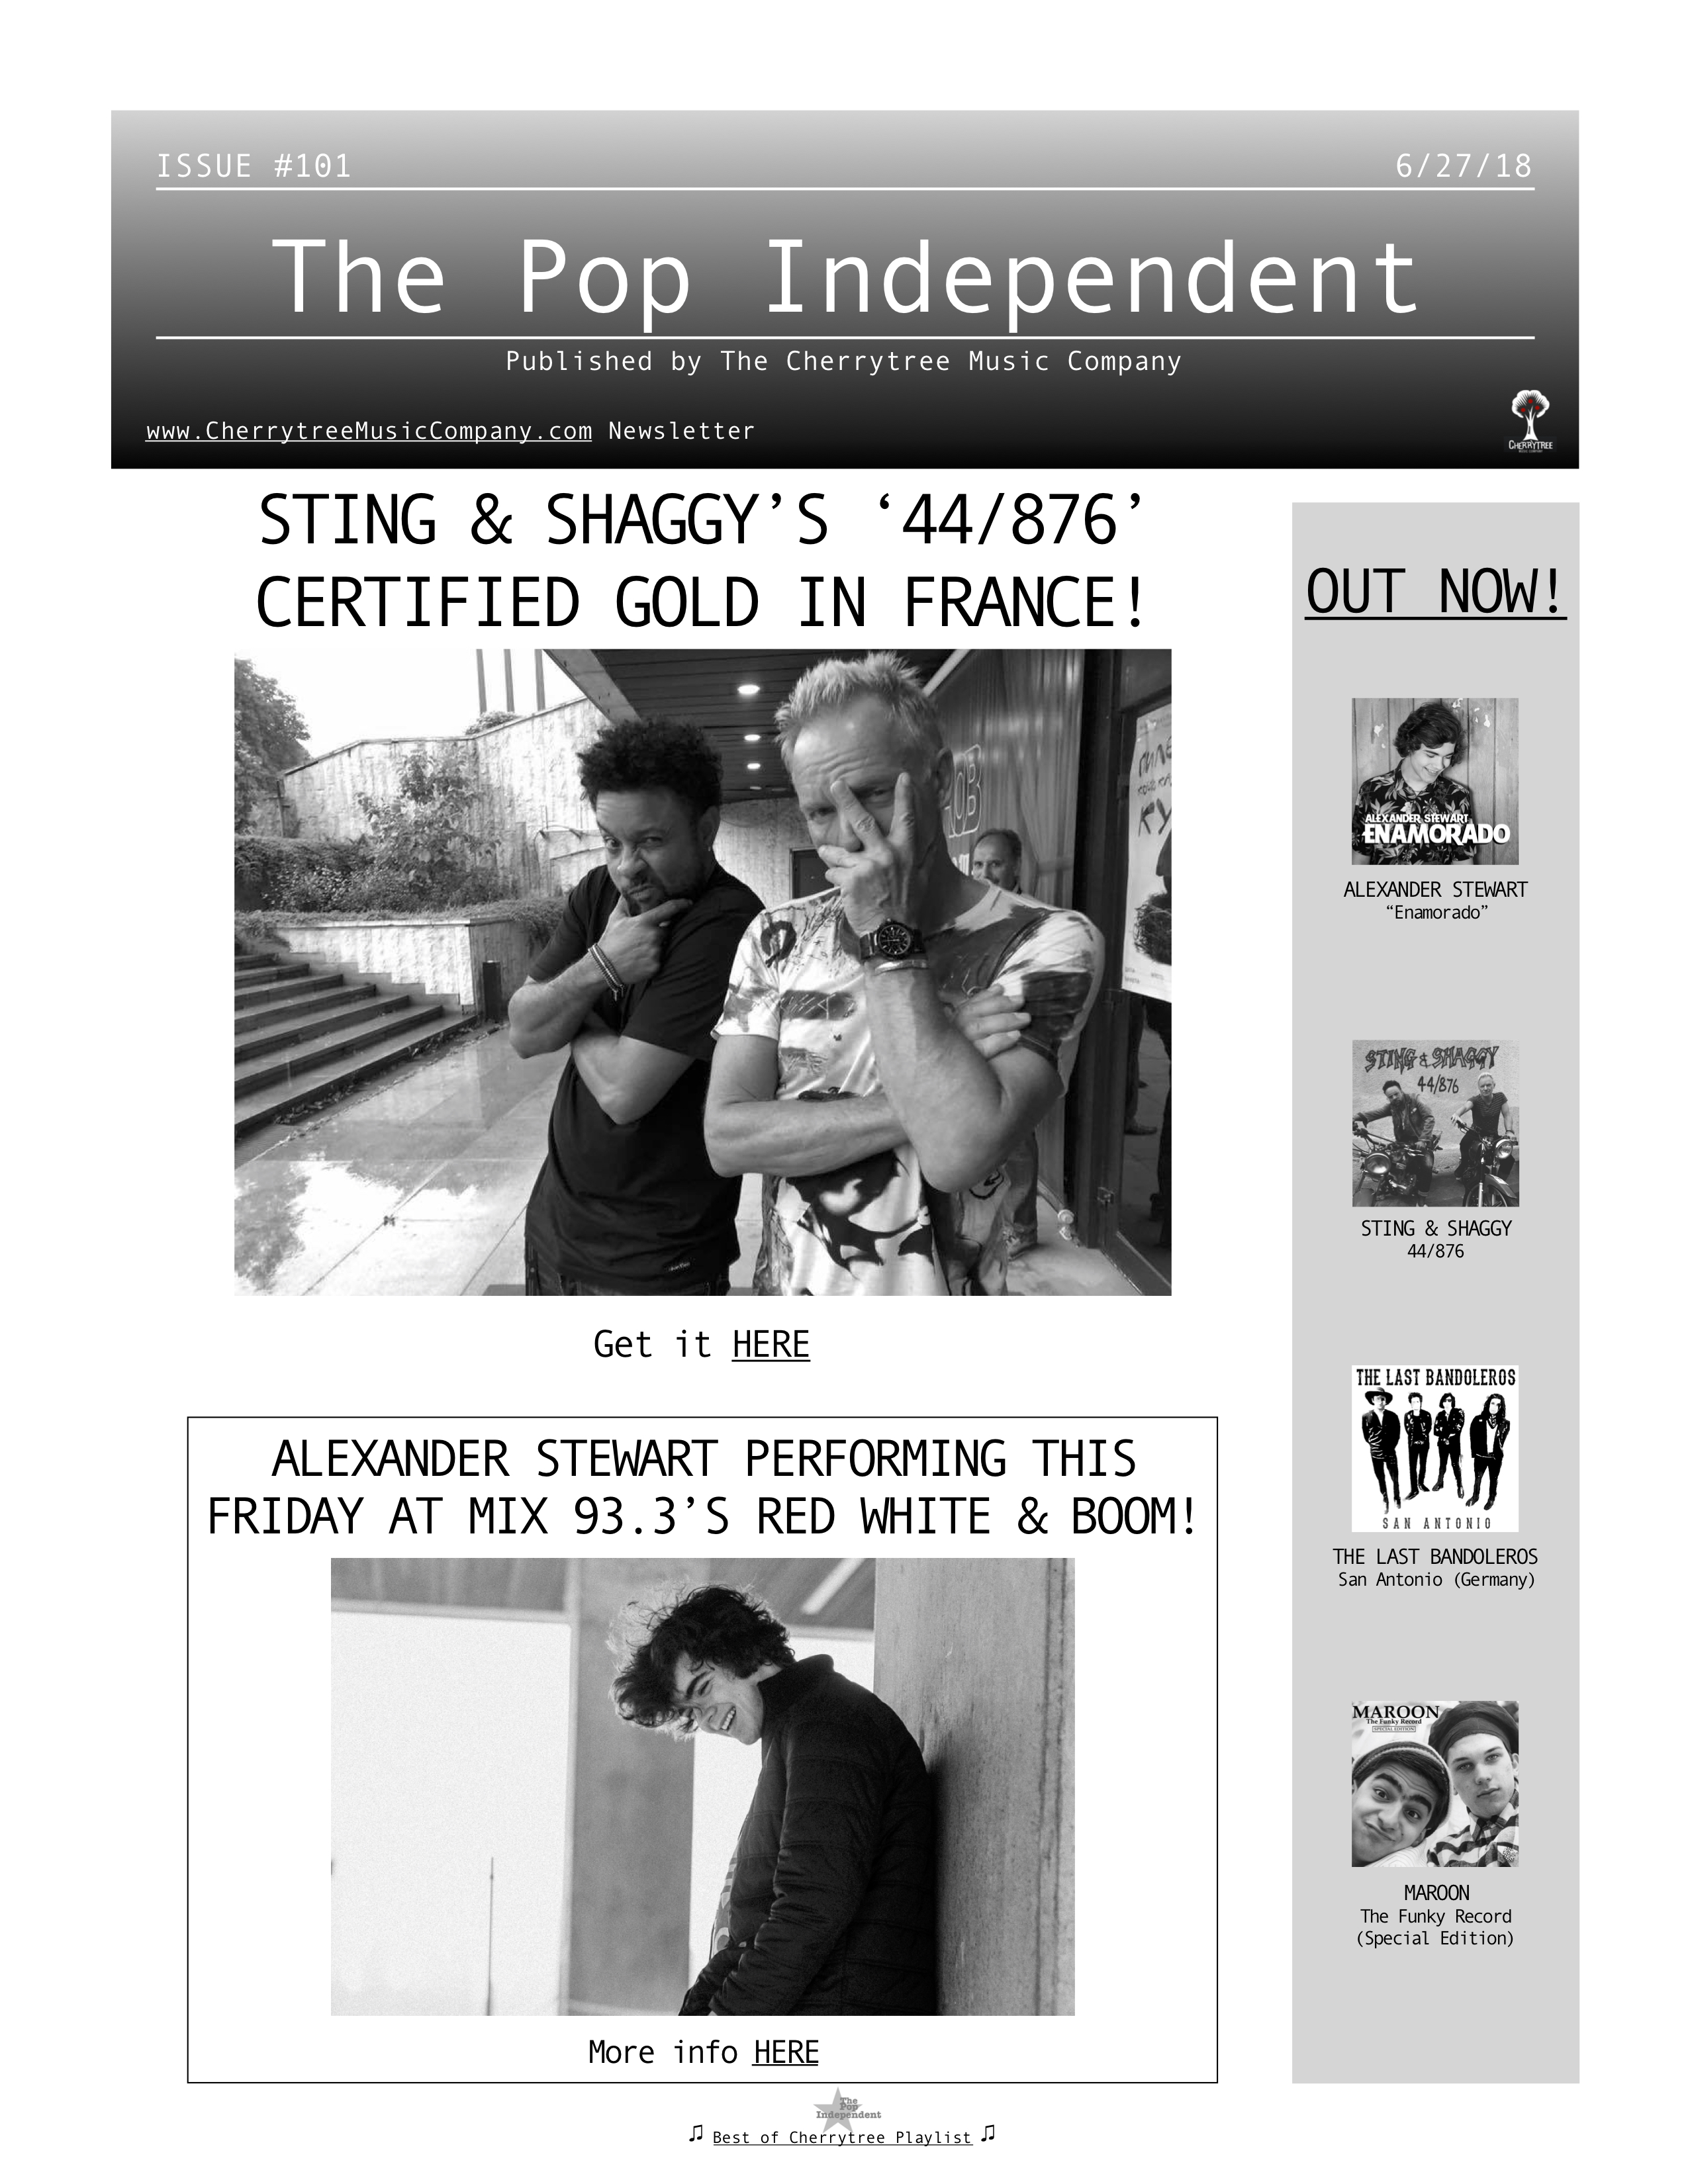 The Pop Independent, issue 101